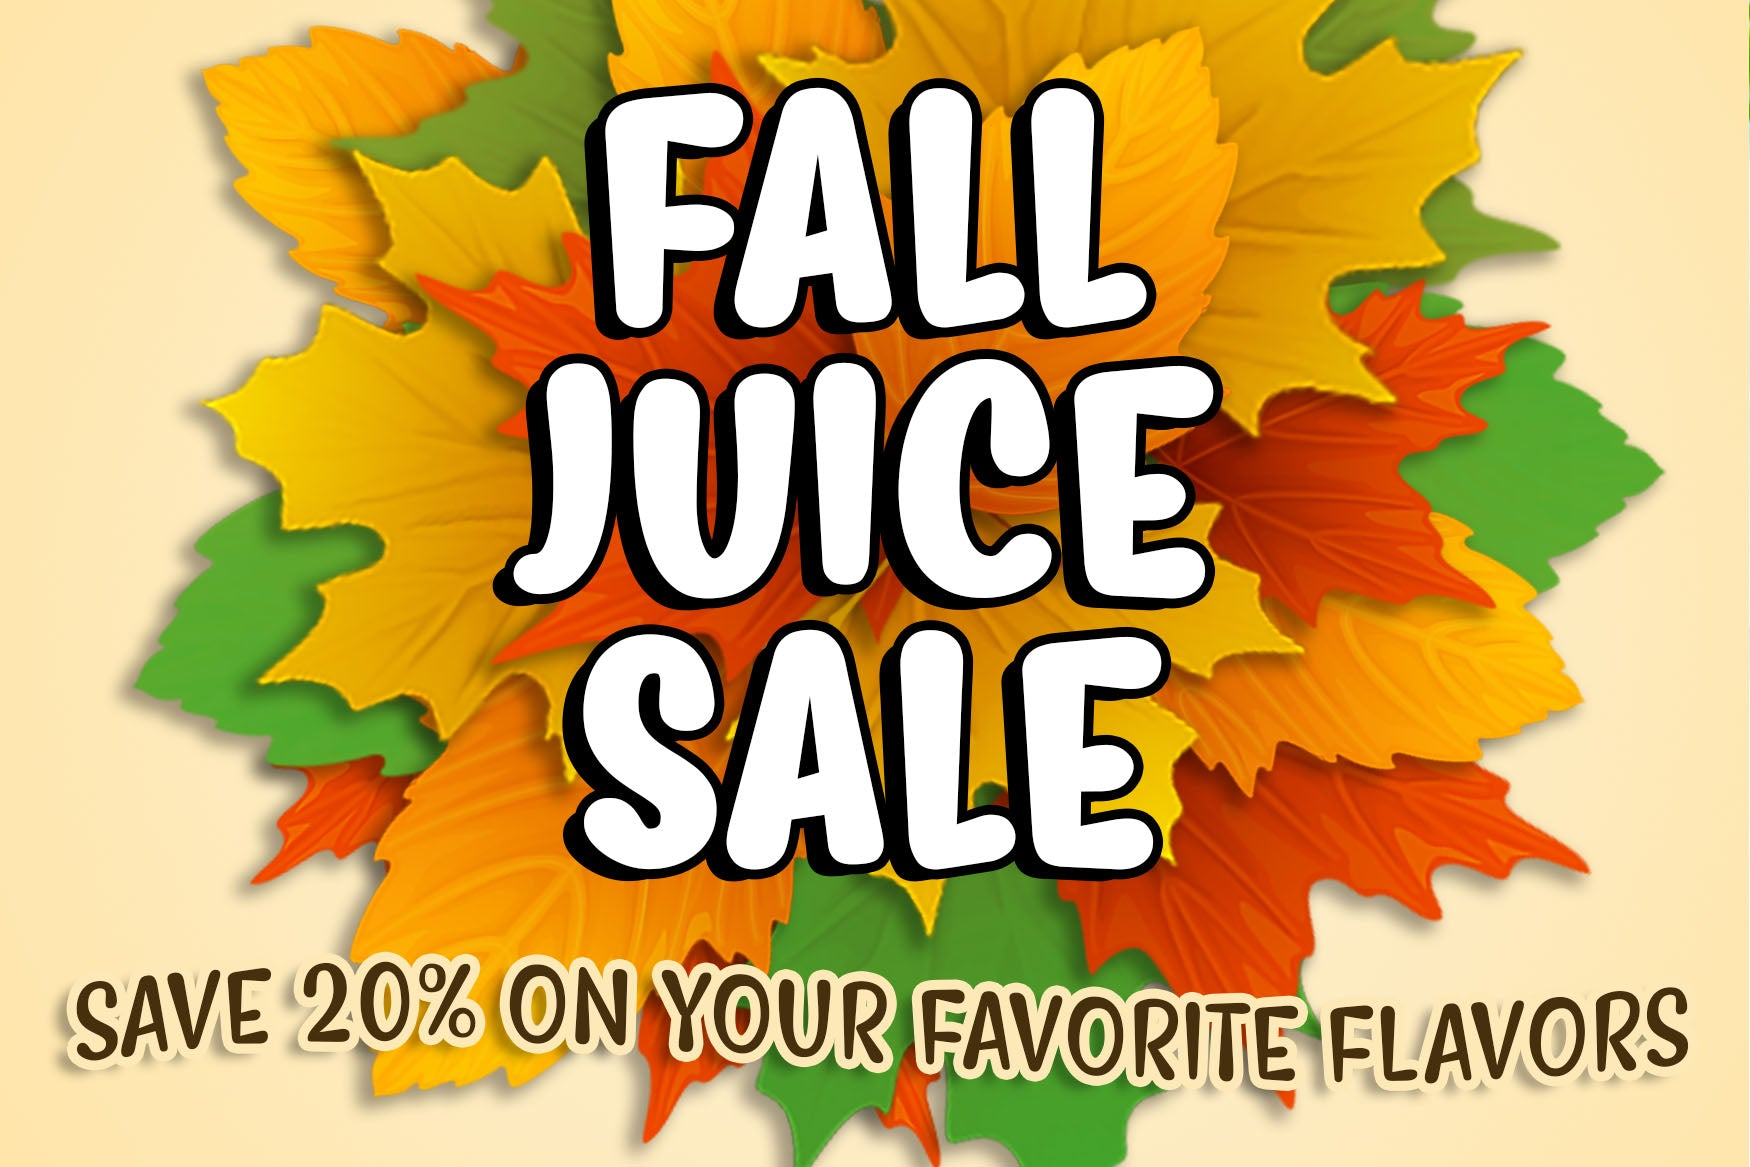 Fall Juices 20% Off